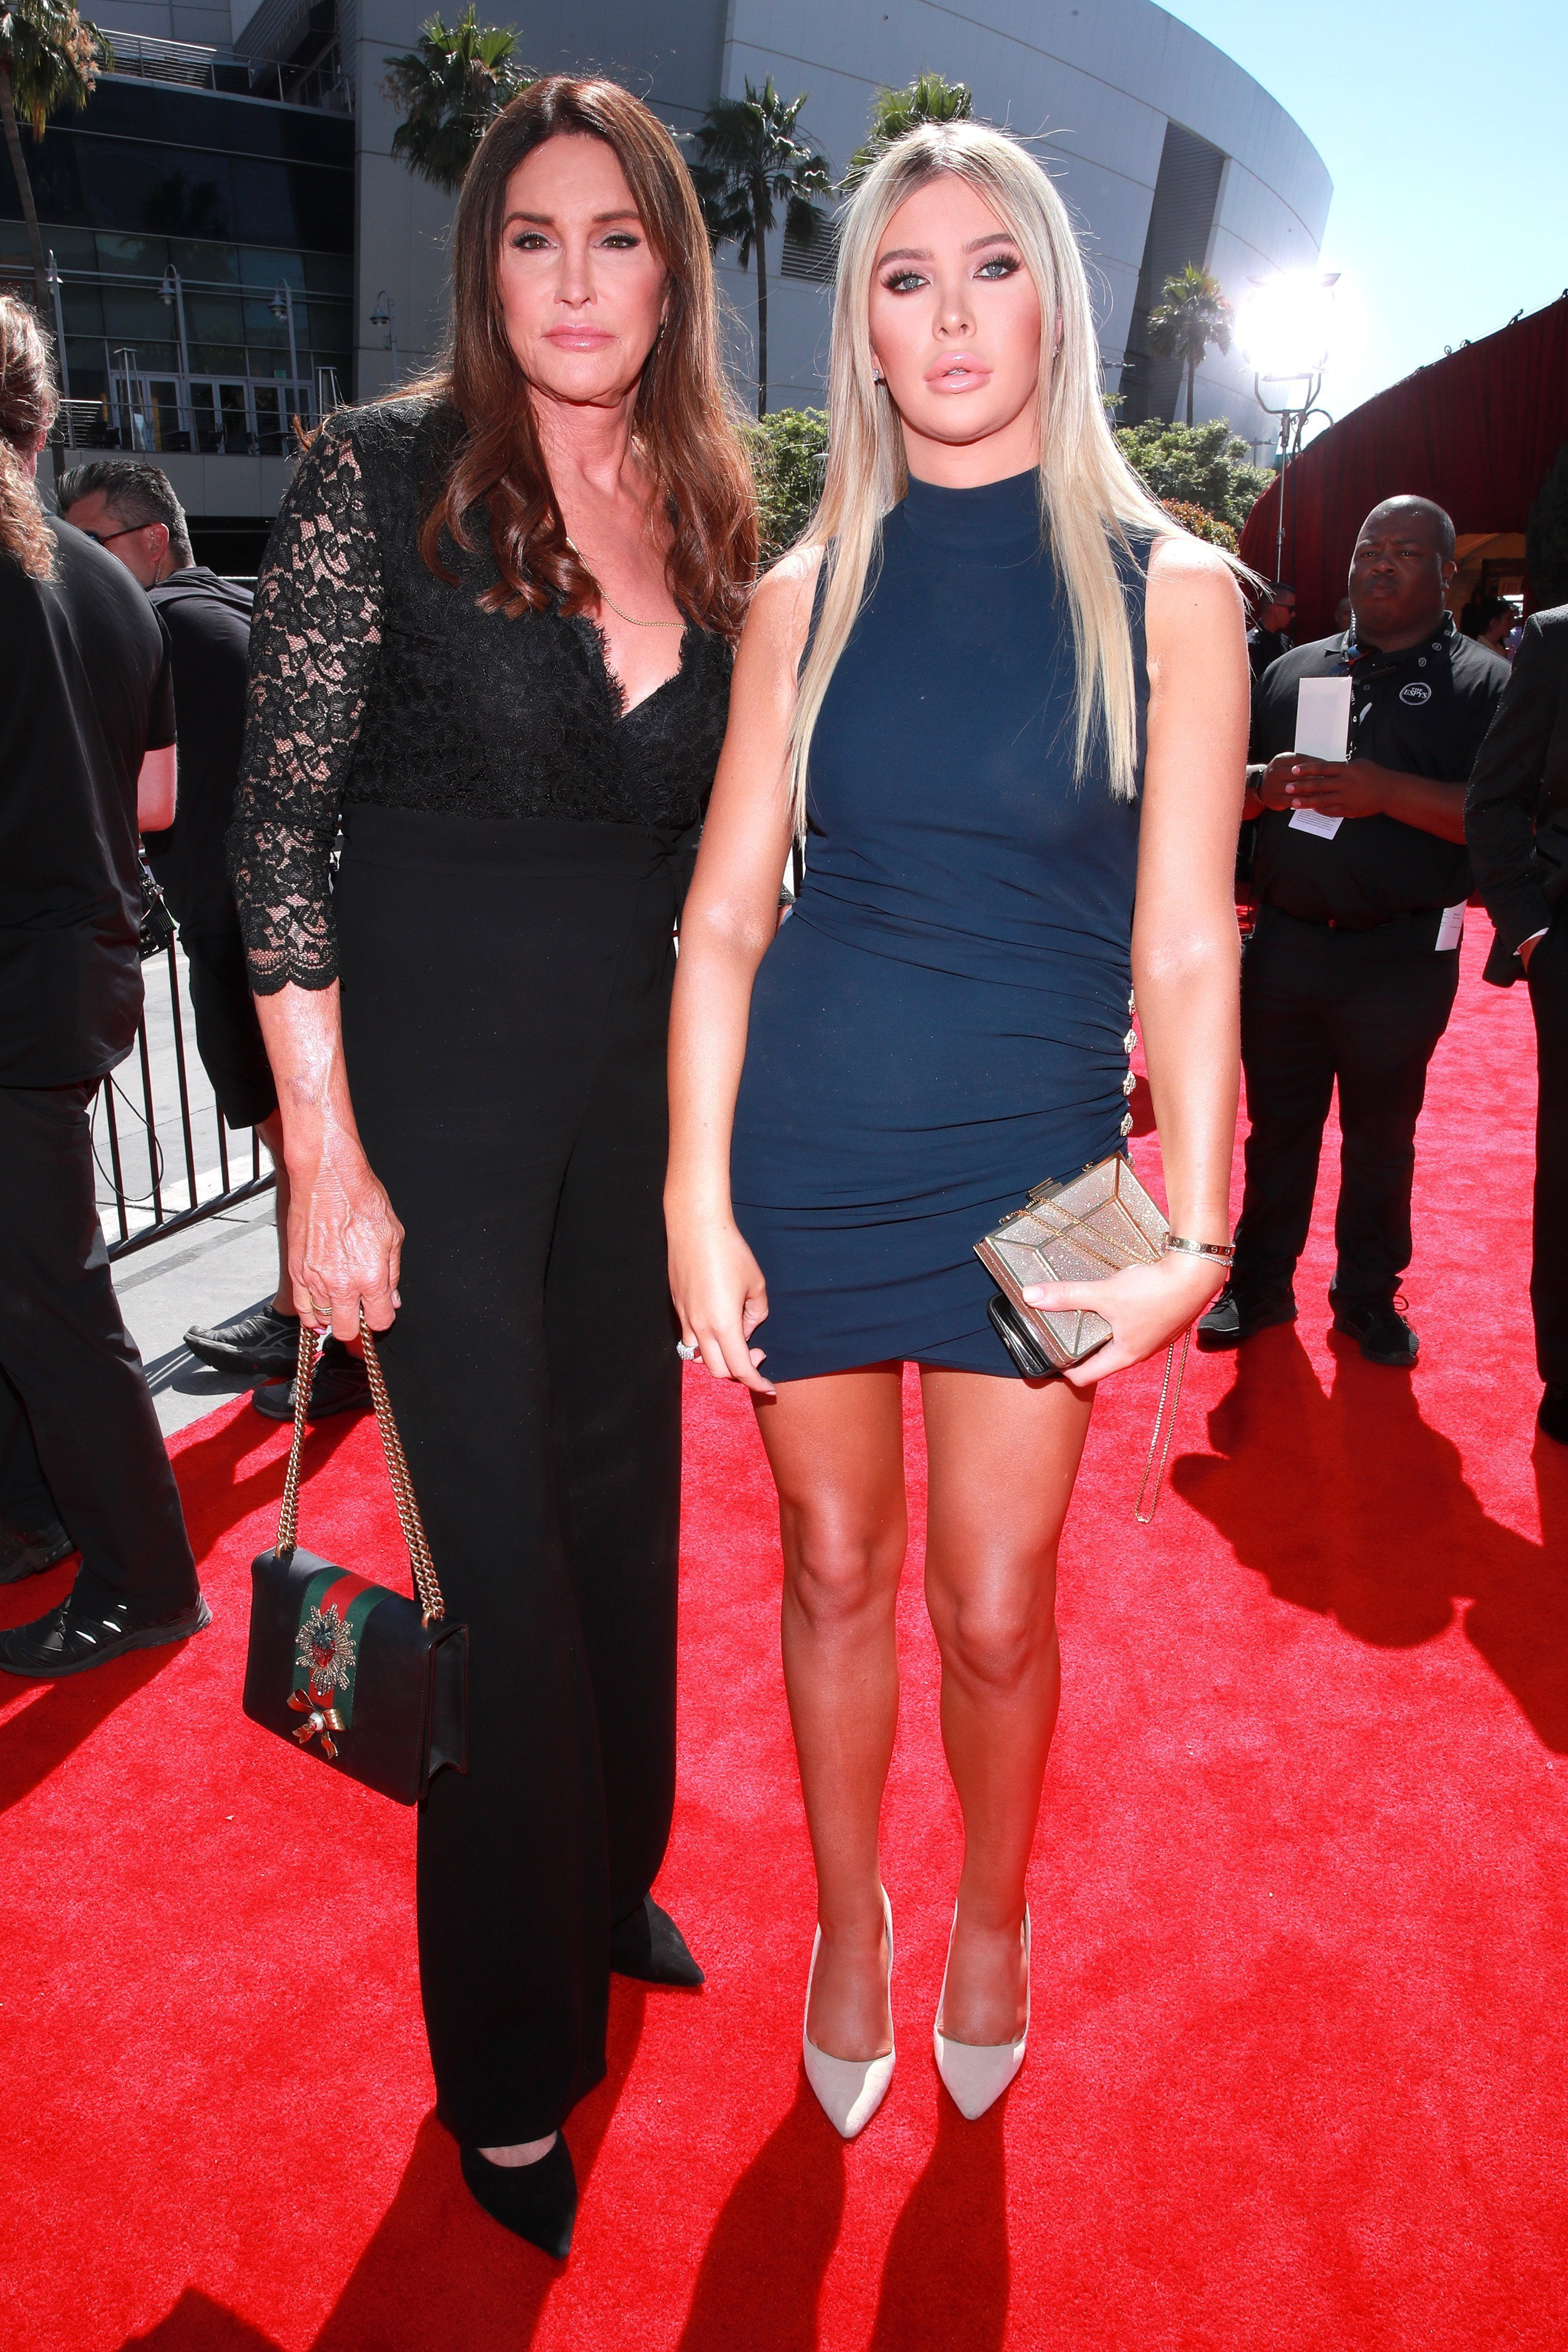 Caitlyn Jenner and Sophia Hutchins attend the annual ESPY Awards in Los Angeles on July 10, 2019 | Photo: Getty Images